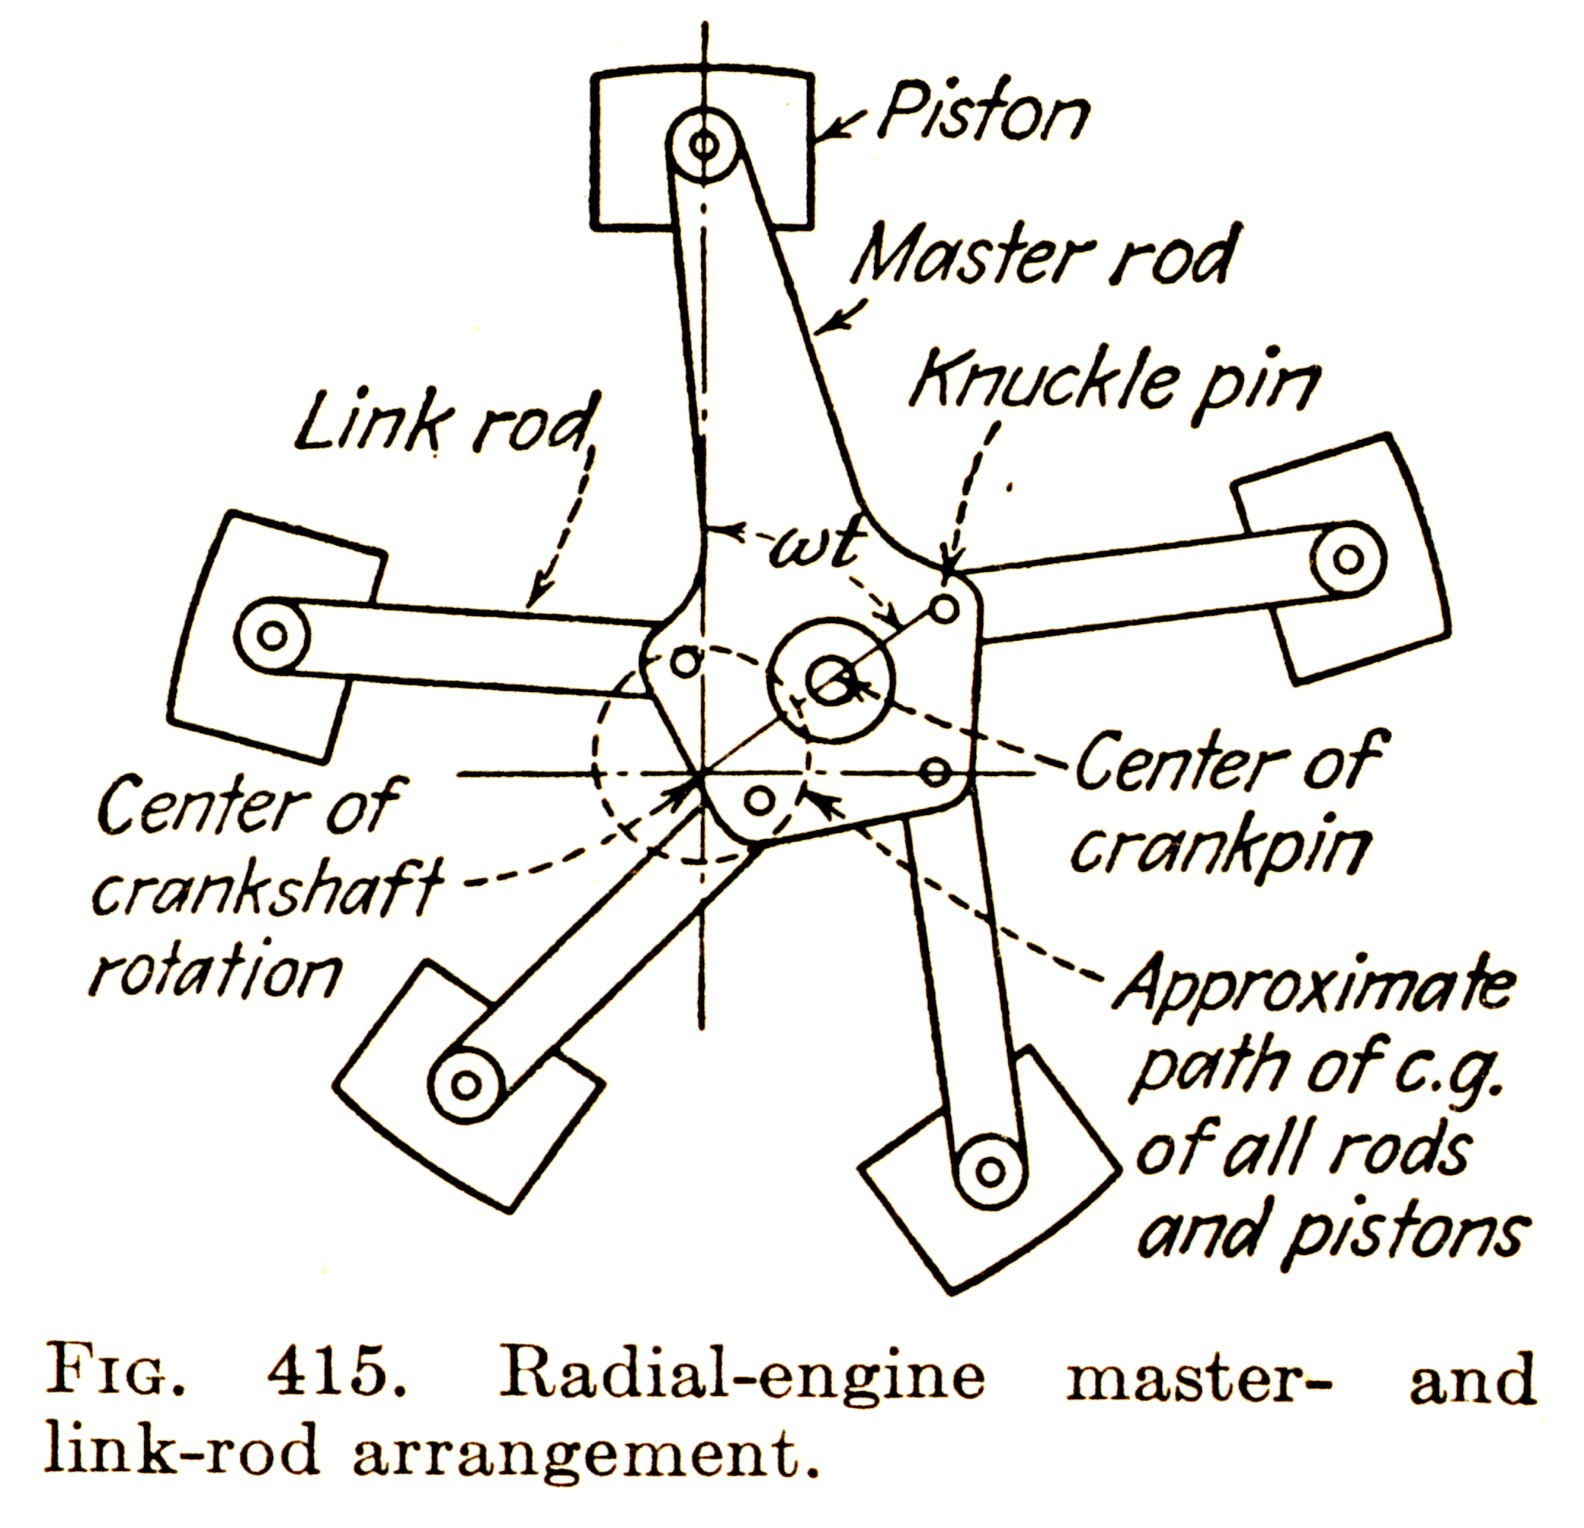 Radial Airplane Engine Fuel Flow Diagram additionally Different Plants Used For Generation Of Electric Power moreover Ravi Jet Engine U11 Me380 also Airplane Engines Part 2 Jet Engines as well Jet Engine Design. on turbofan engine schematic